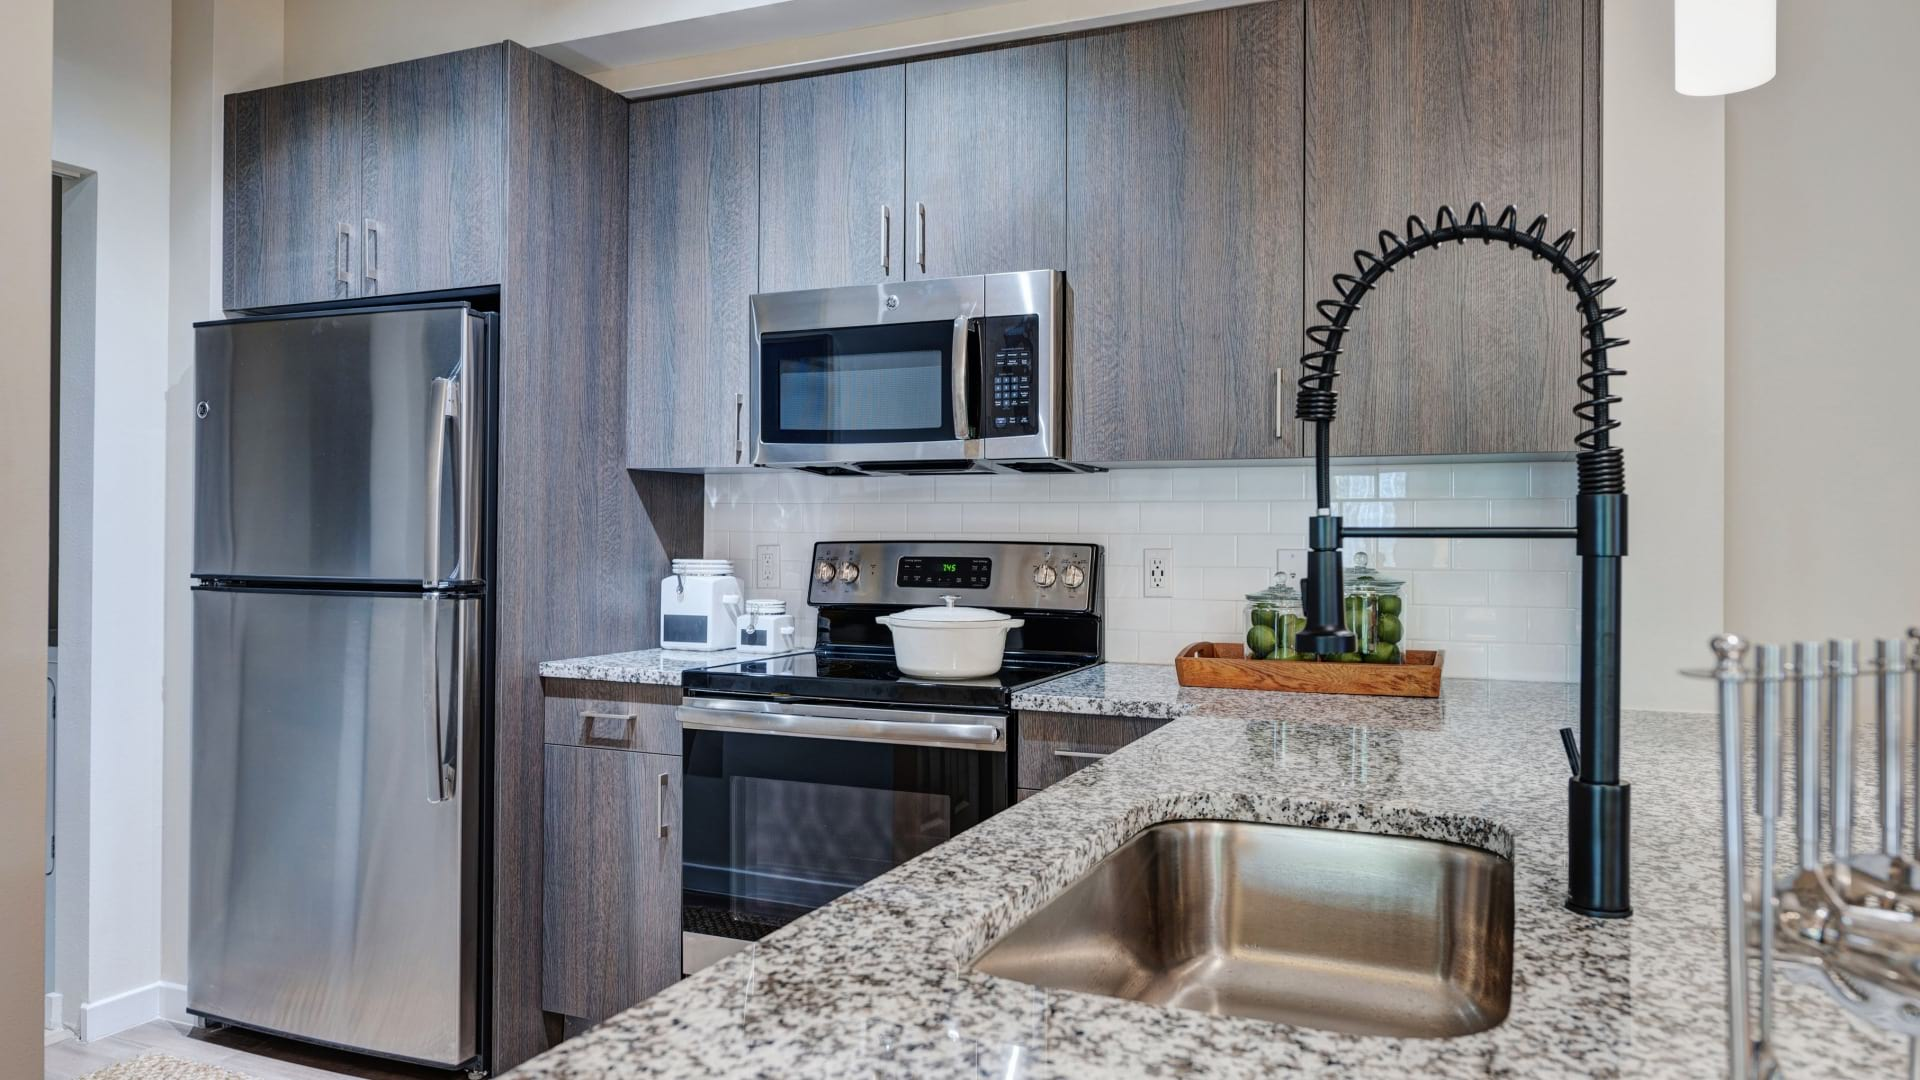 Apartments for Rent in Hollywood, FL